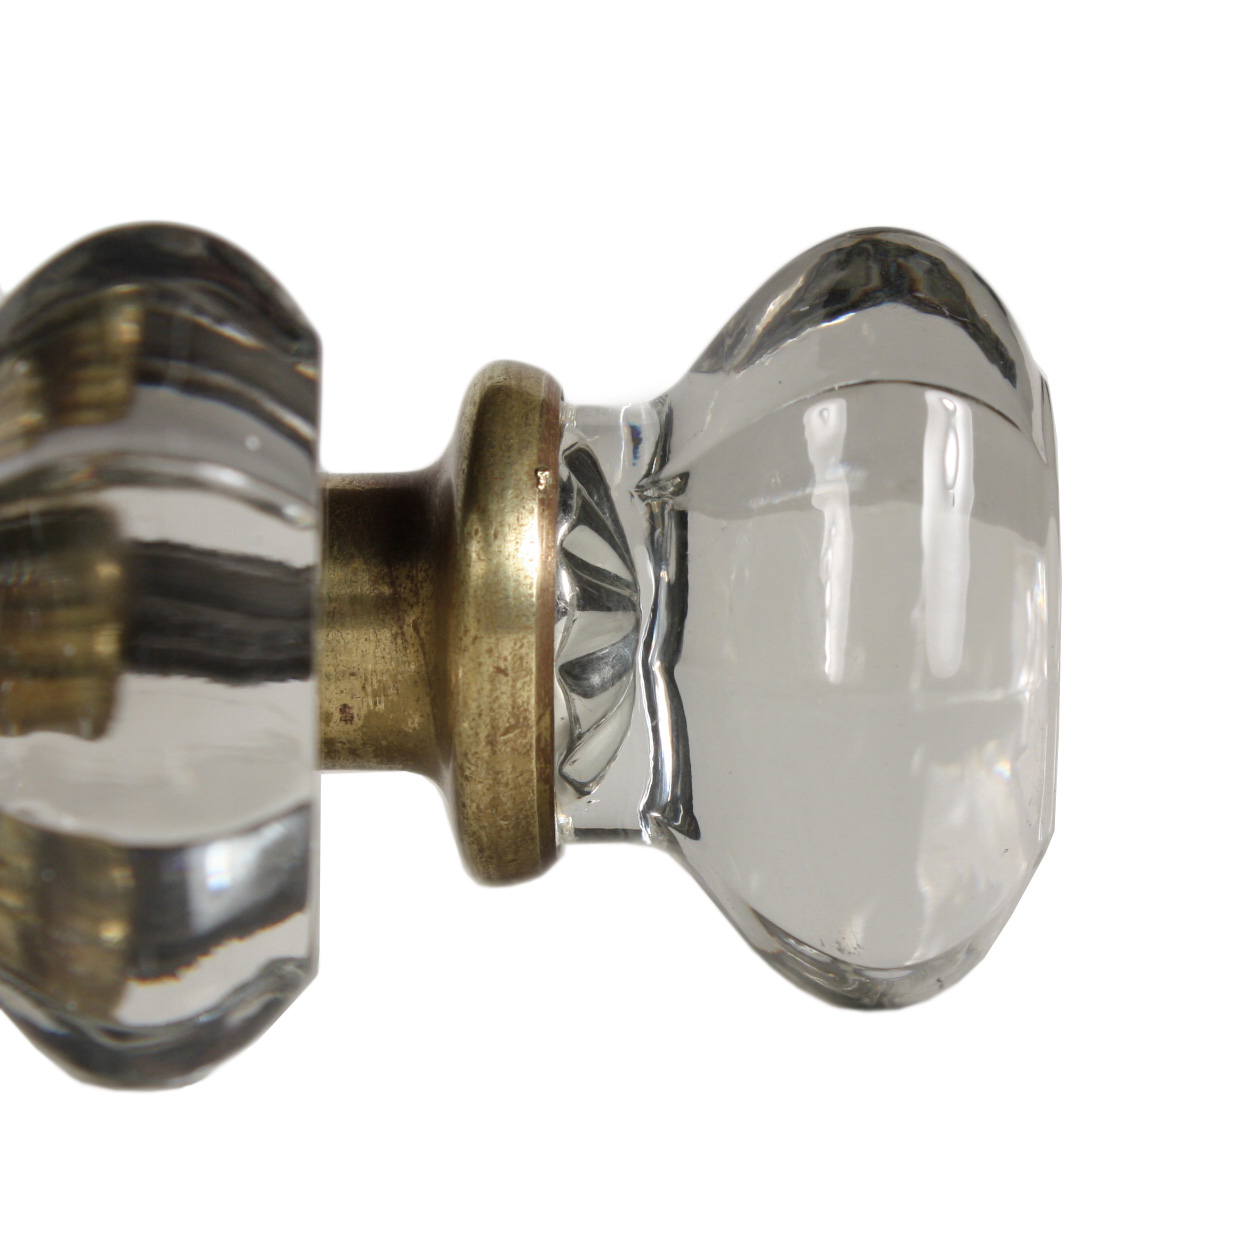 Antique Octagonal Glass Door Knob Set Ndk83 Rw For Sale